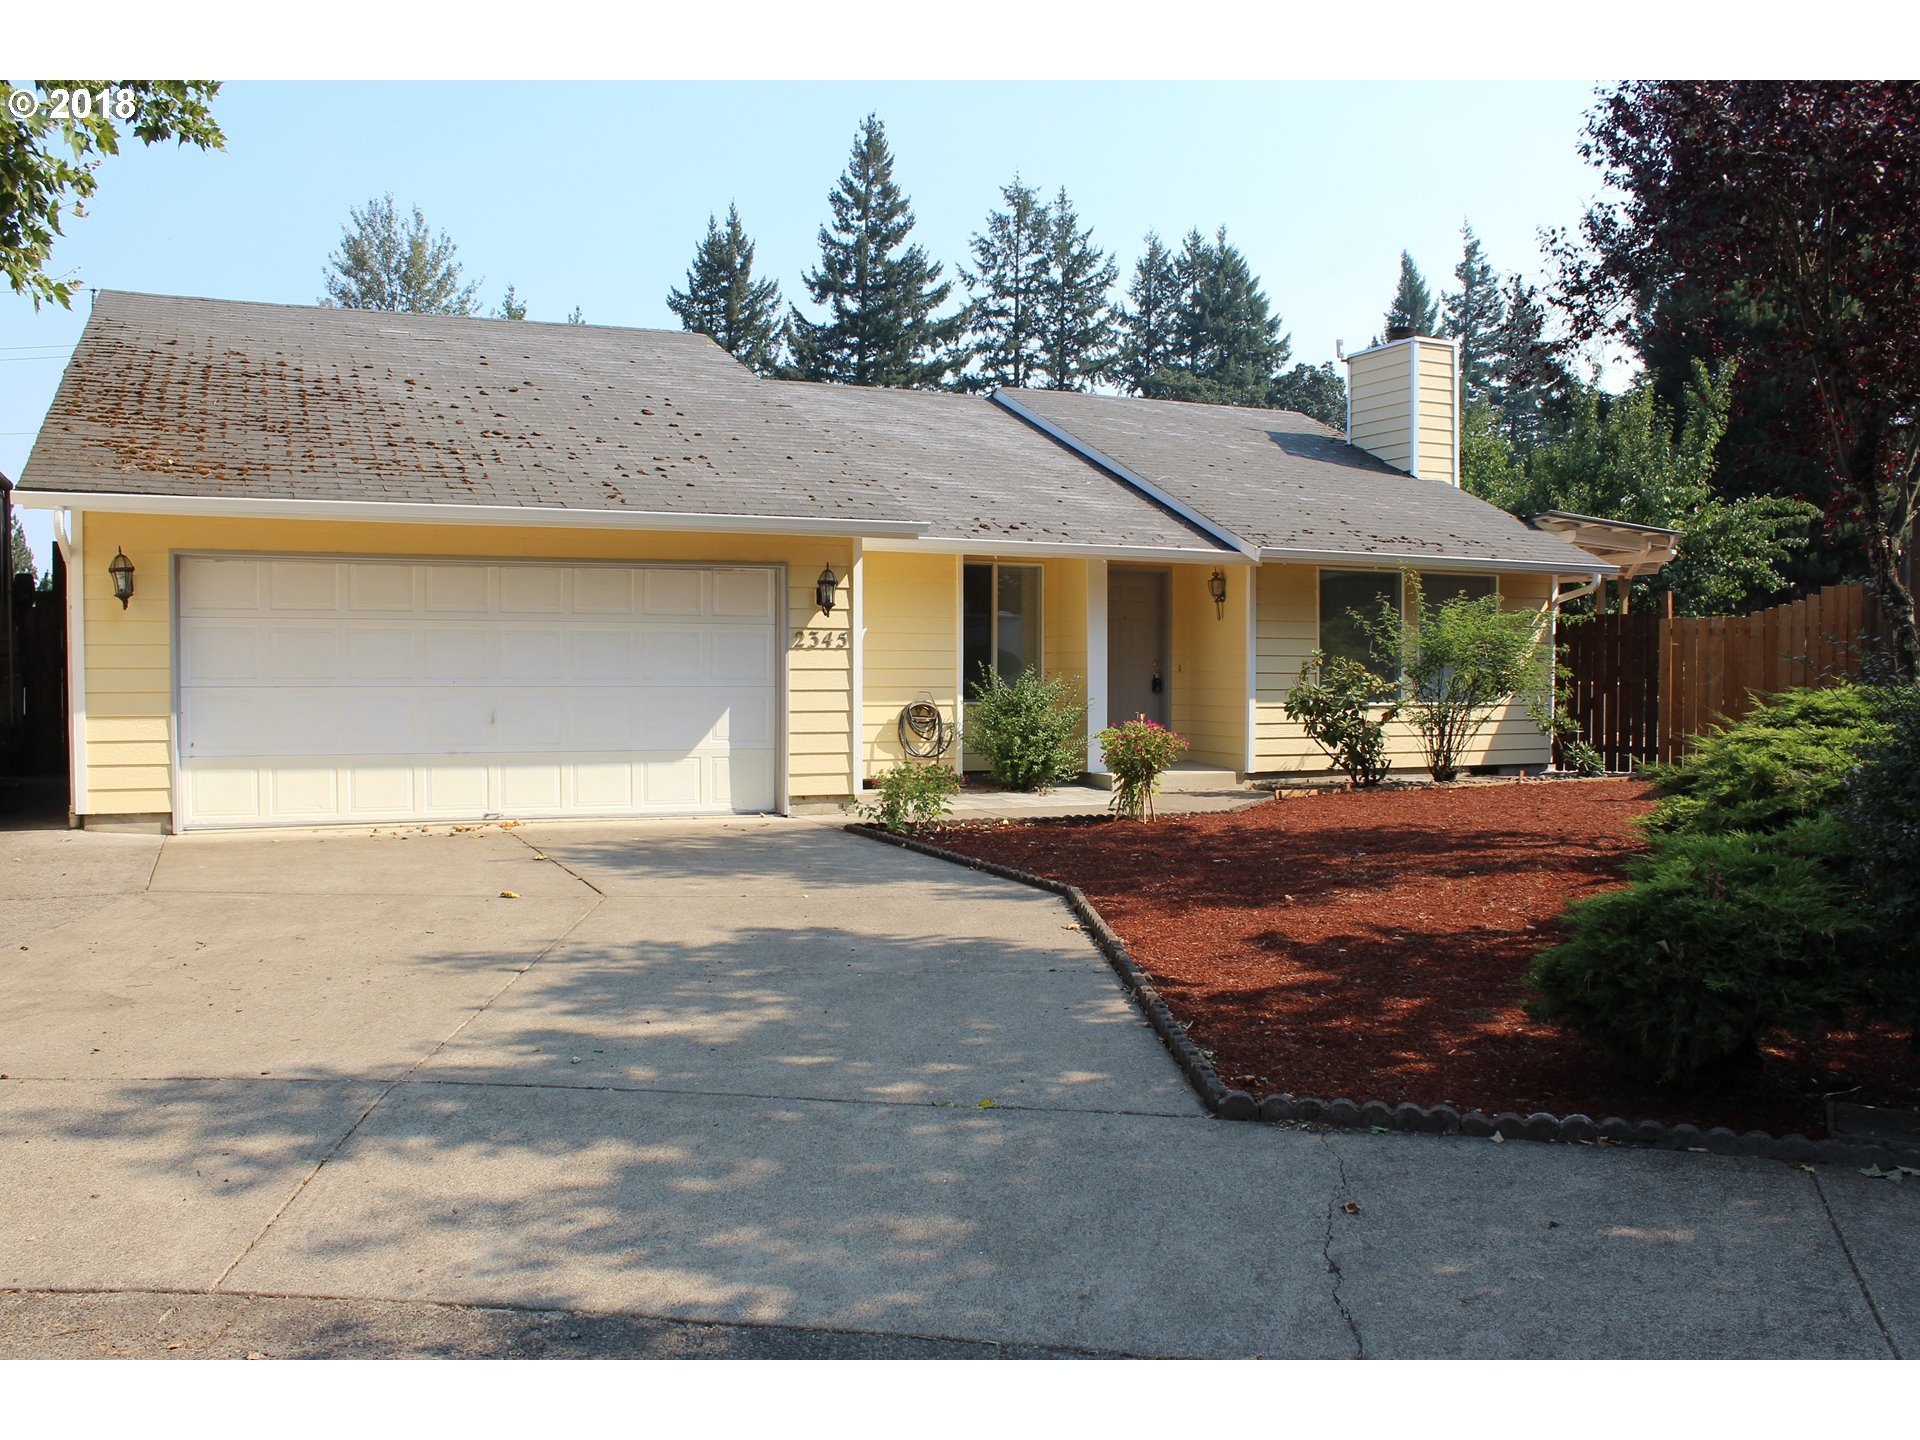 2345 IRONWOOD ST Eugene, OR 97401 18604899